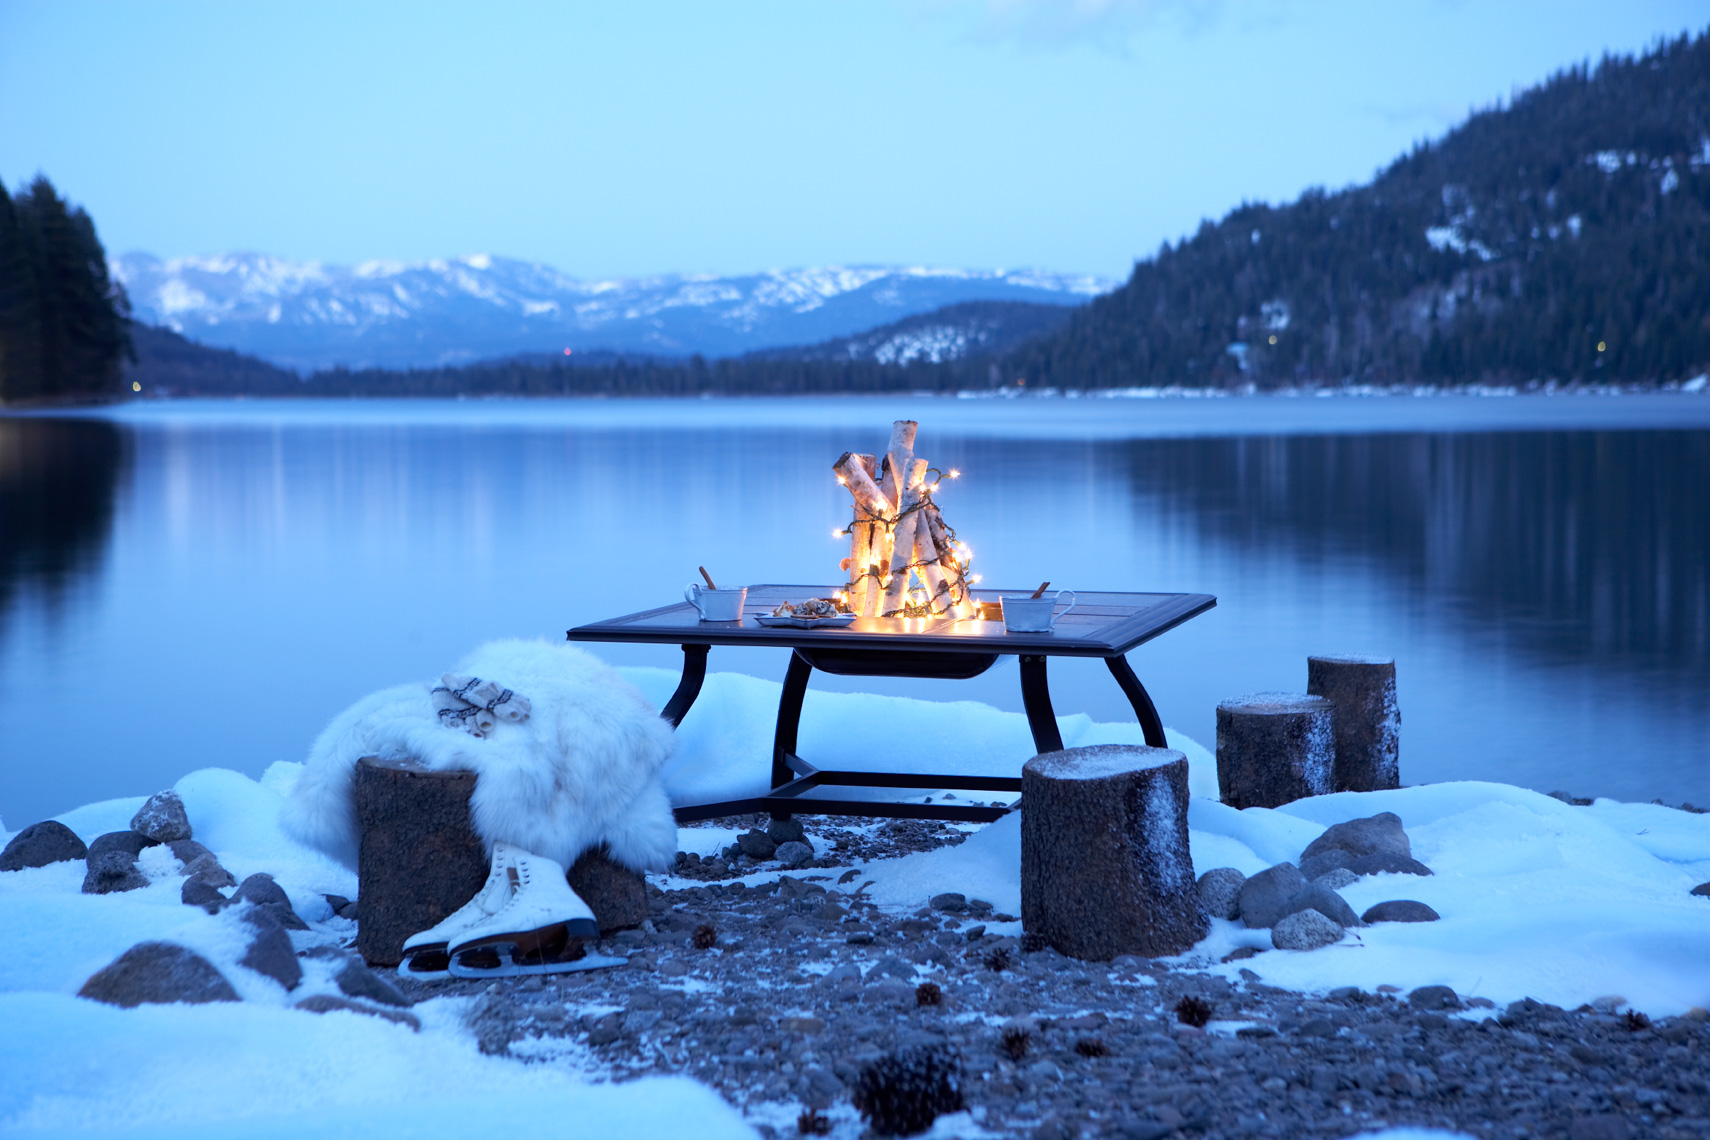 Winter lake scene of lit fire bowl with log chairs and snow on beach